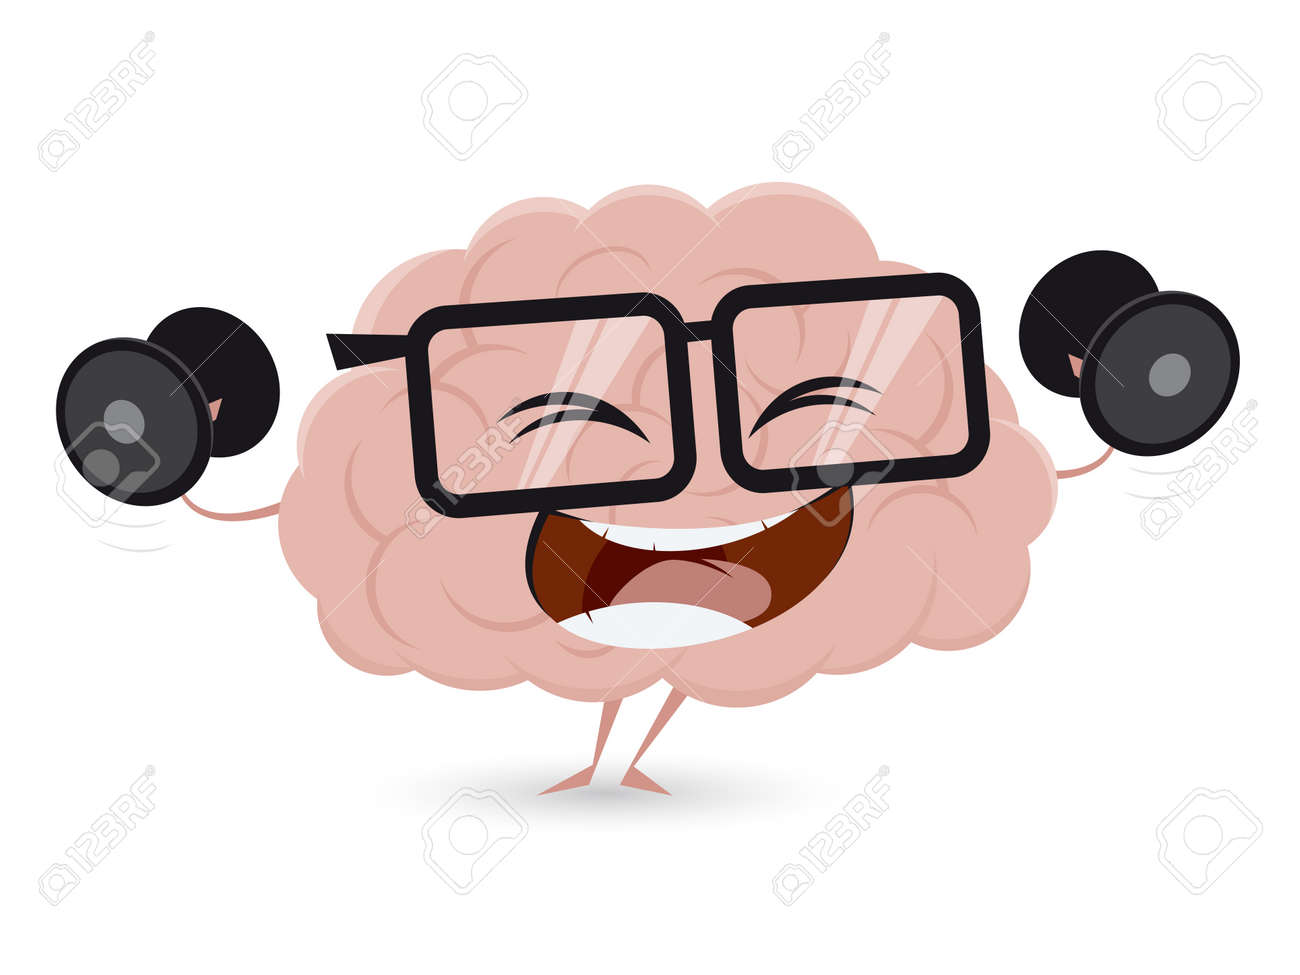 funny brain workout with dumbbells clipart royalty free cliparts rh 123rf com workout clipart free workout clip art images